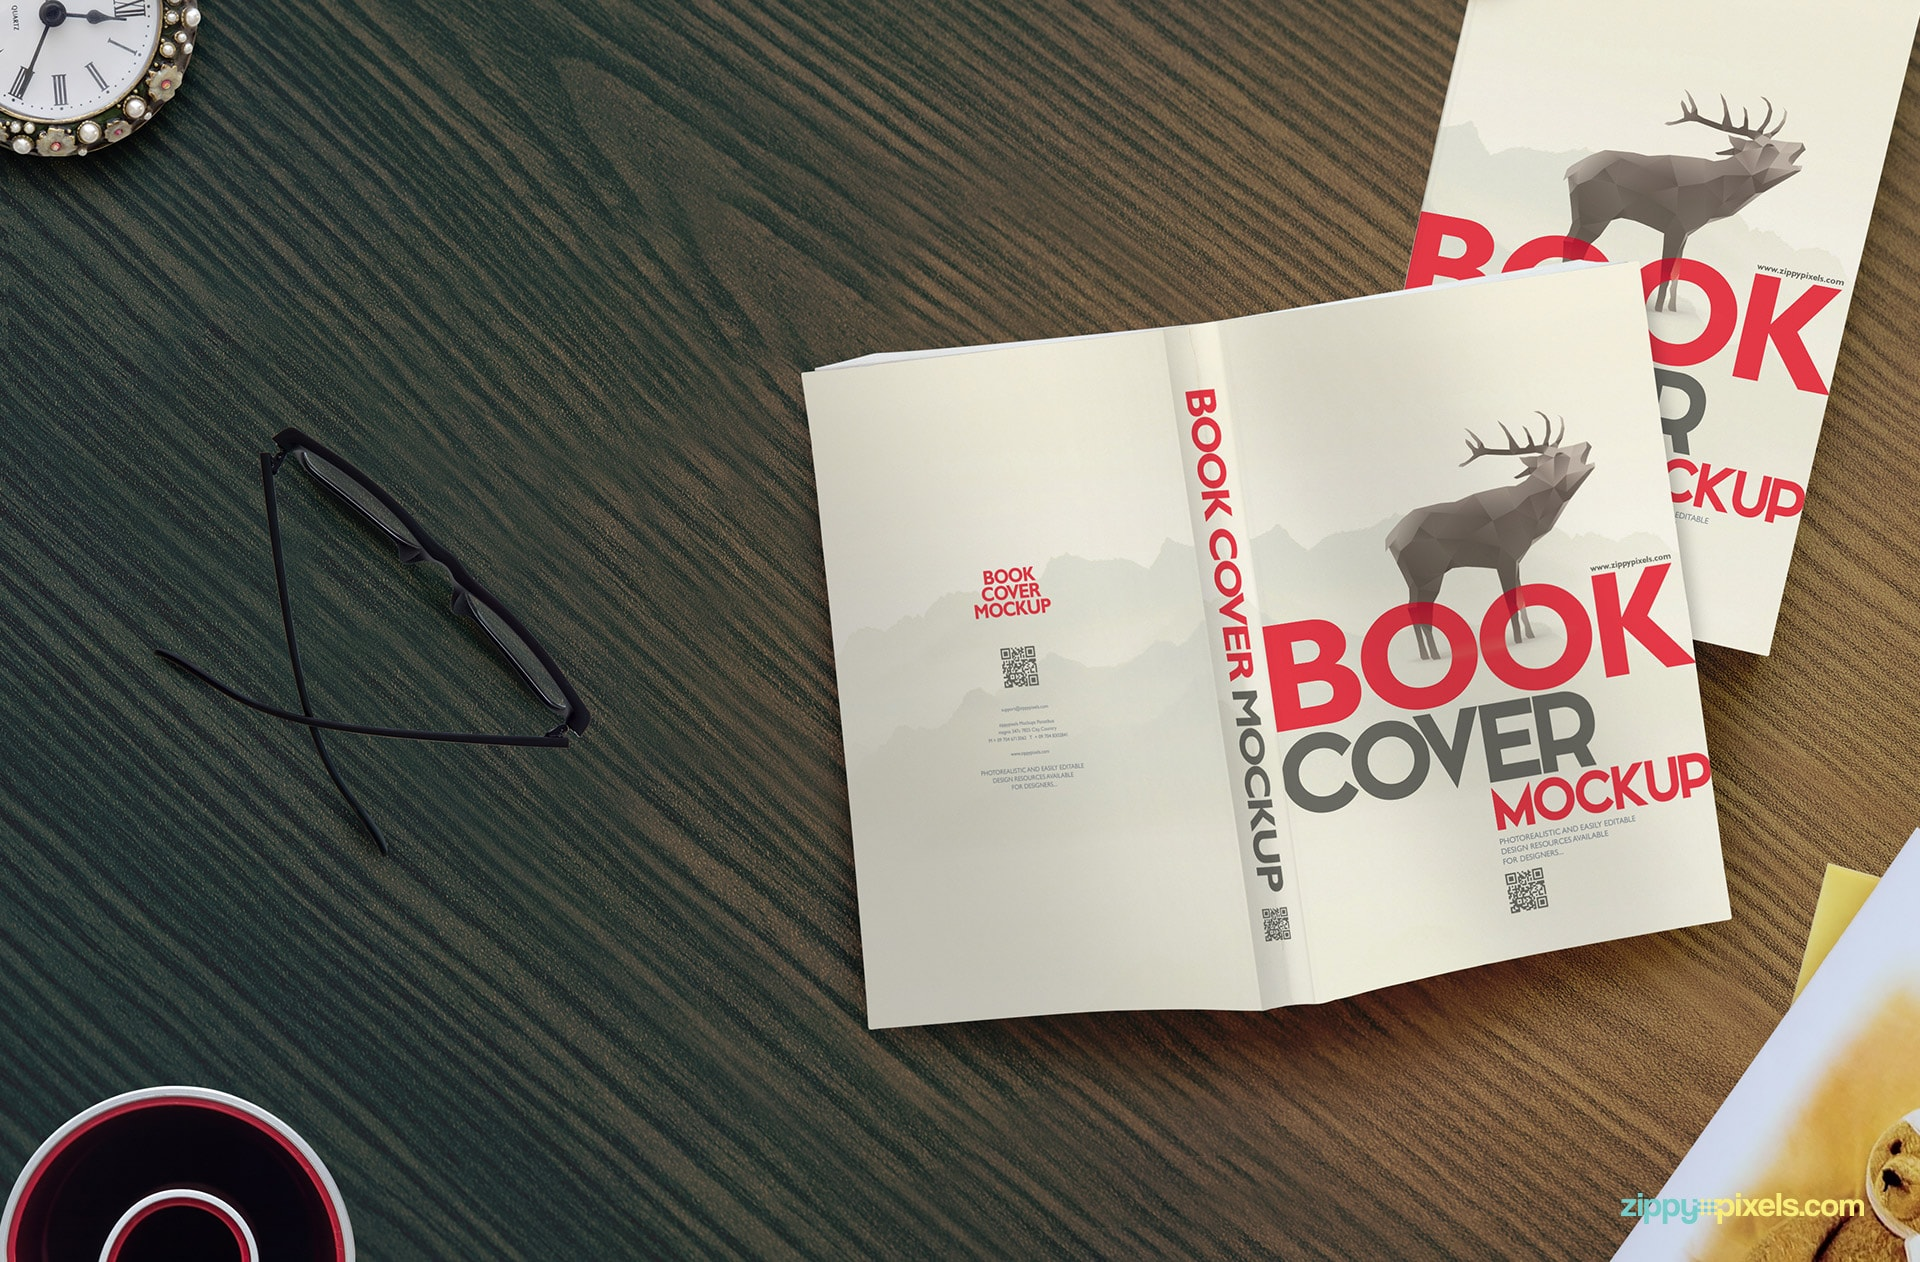 Paperback book mockup showing two paperbacks for showing softcover designs with a get greeting card lying on the side.